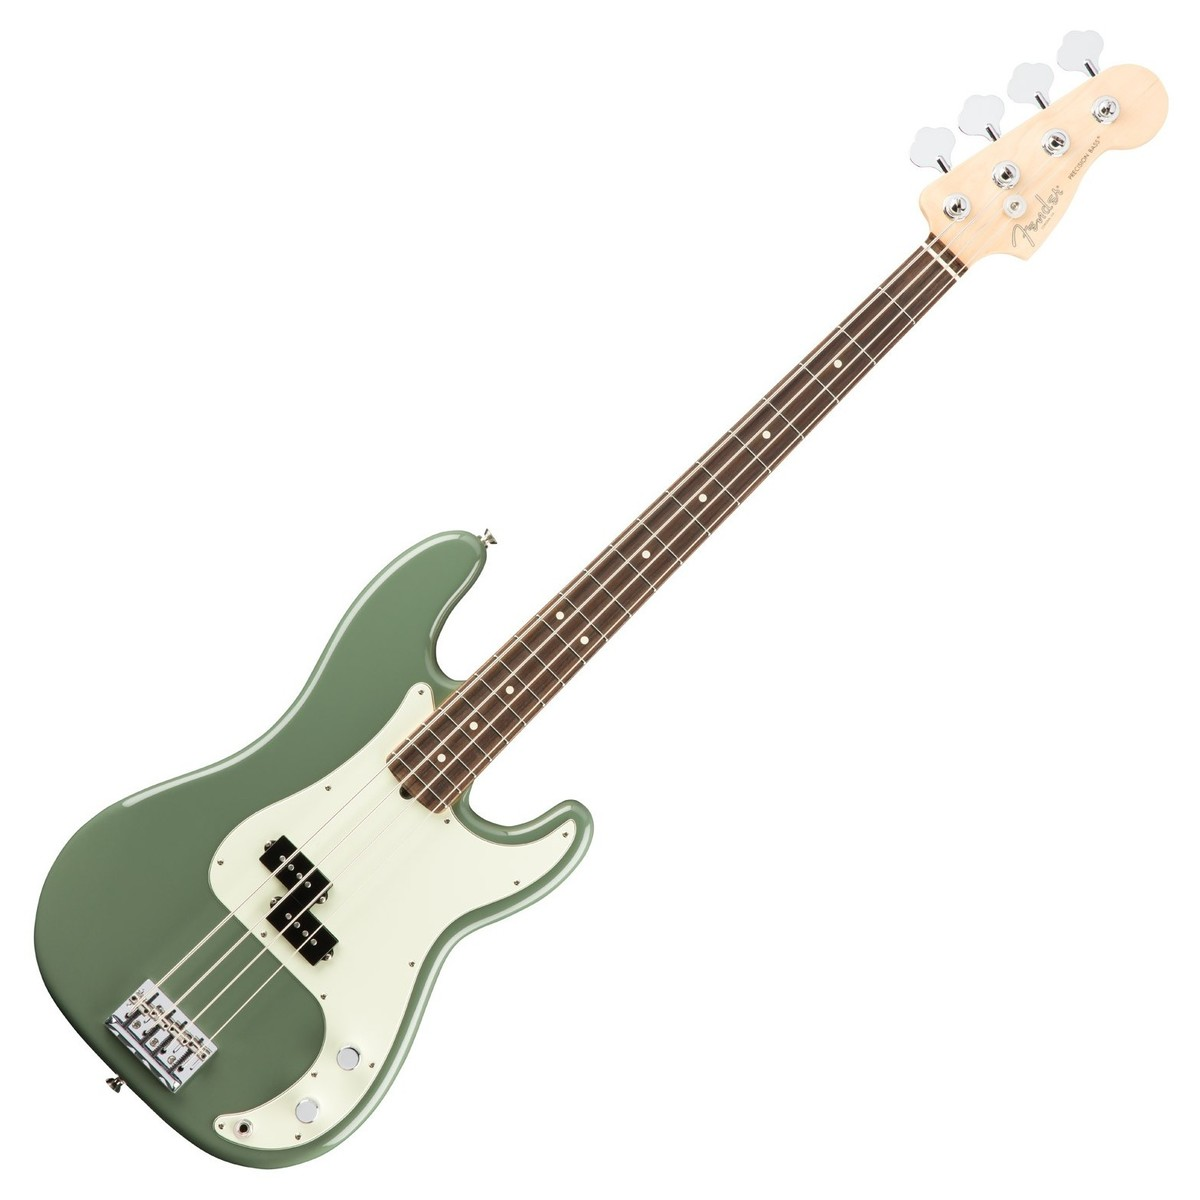 fender american professional precision bass rw antique olive box opened at gear4music. Black Bedroom Furniture Sets. Home Design Ideas